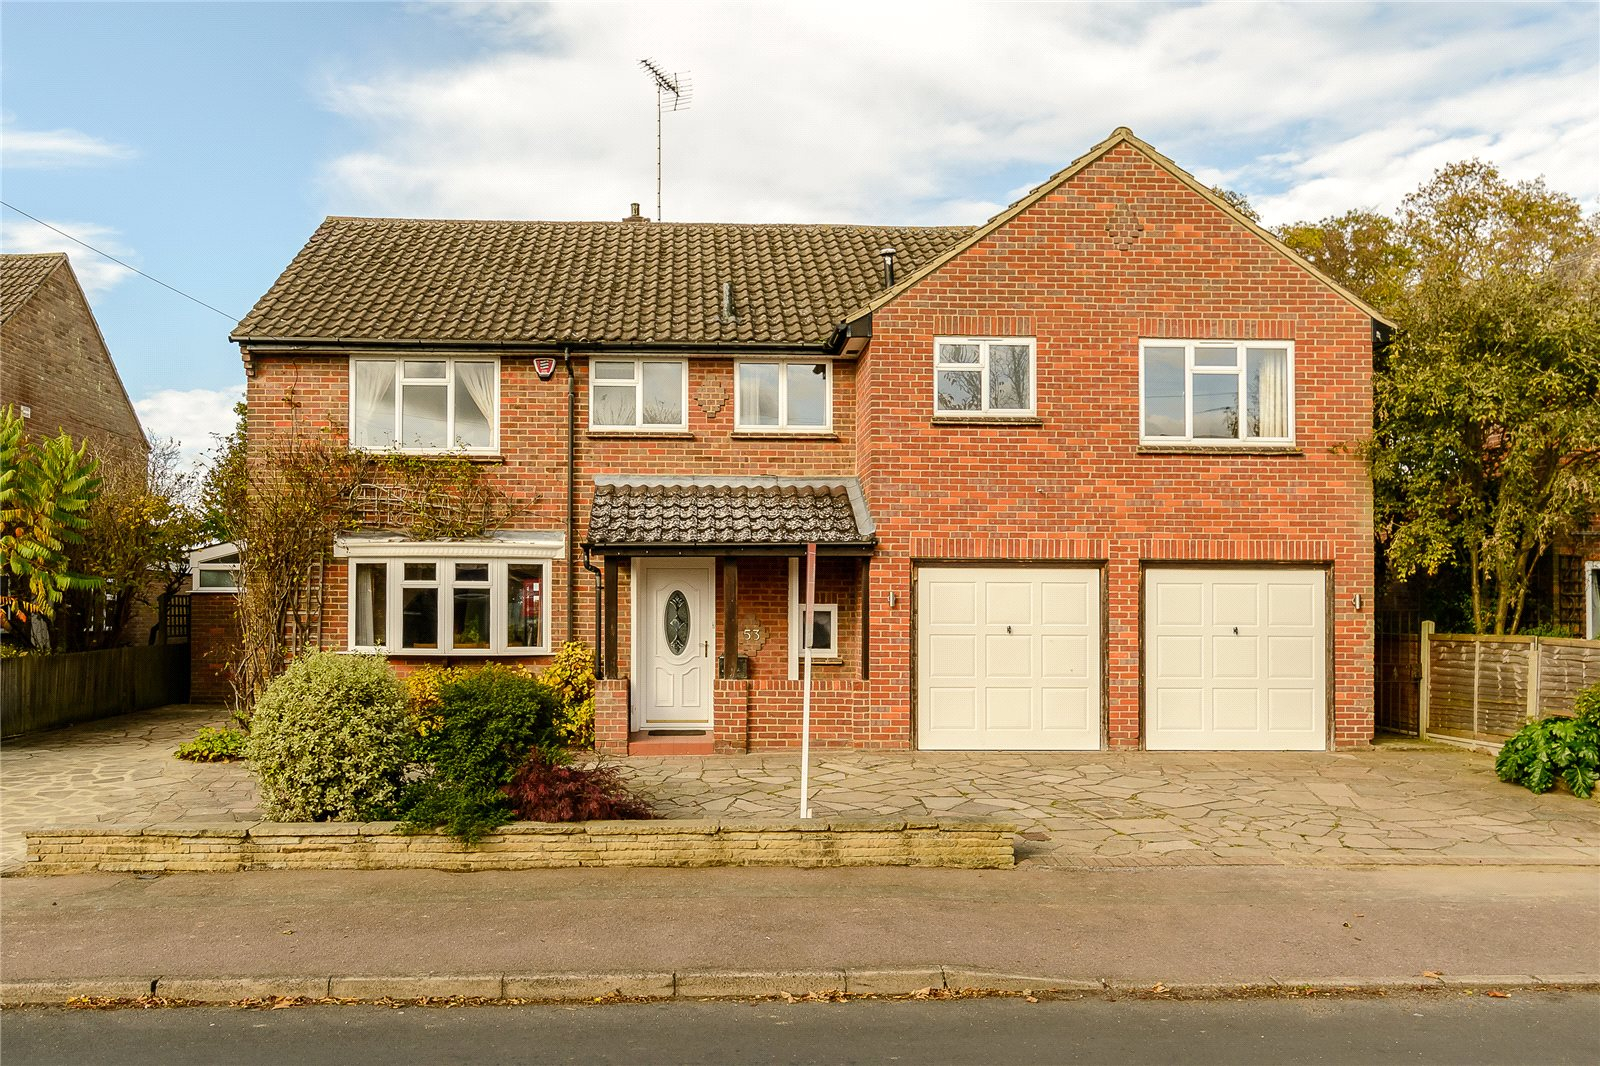 Single Family Home for Sale at Bloomfield Road, Harpenden, Hertfordshire, AL5 Harpenden, England